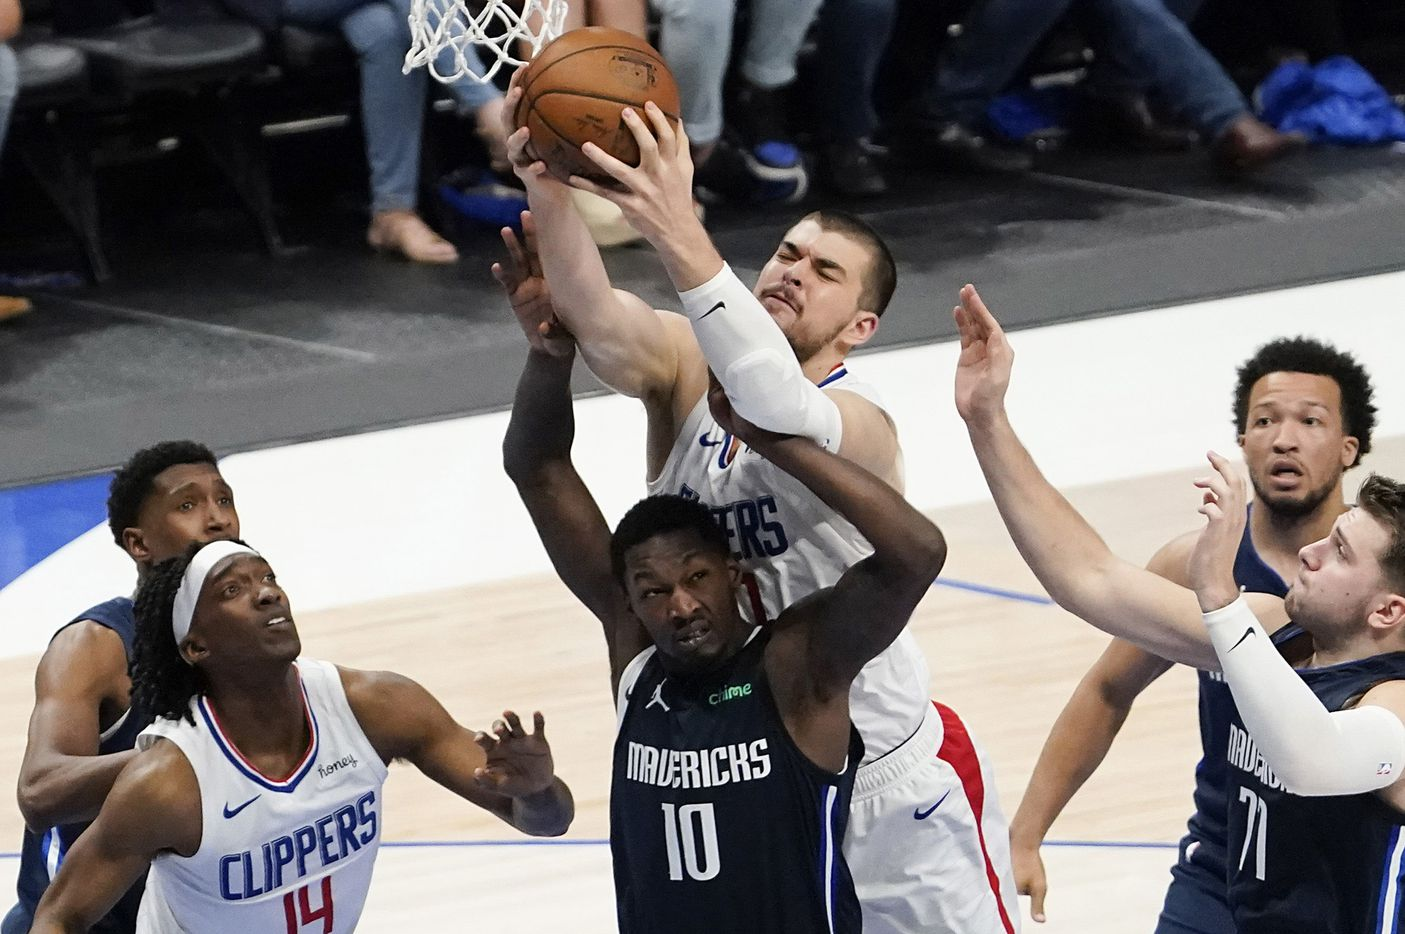 LA Clippers center Ivica Zubac (40) grabs a rebound over Dallas Mavericks forward Dorian Finney-Smith (10) during the third quarter of an NBA playoff basketball game at American Airlines Center on Friday, May 28, 2021, in Dallas.